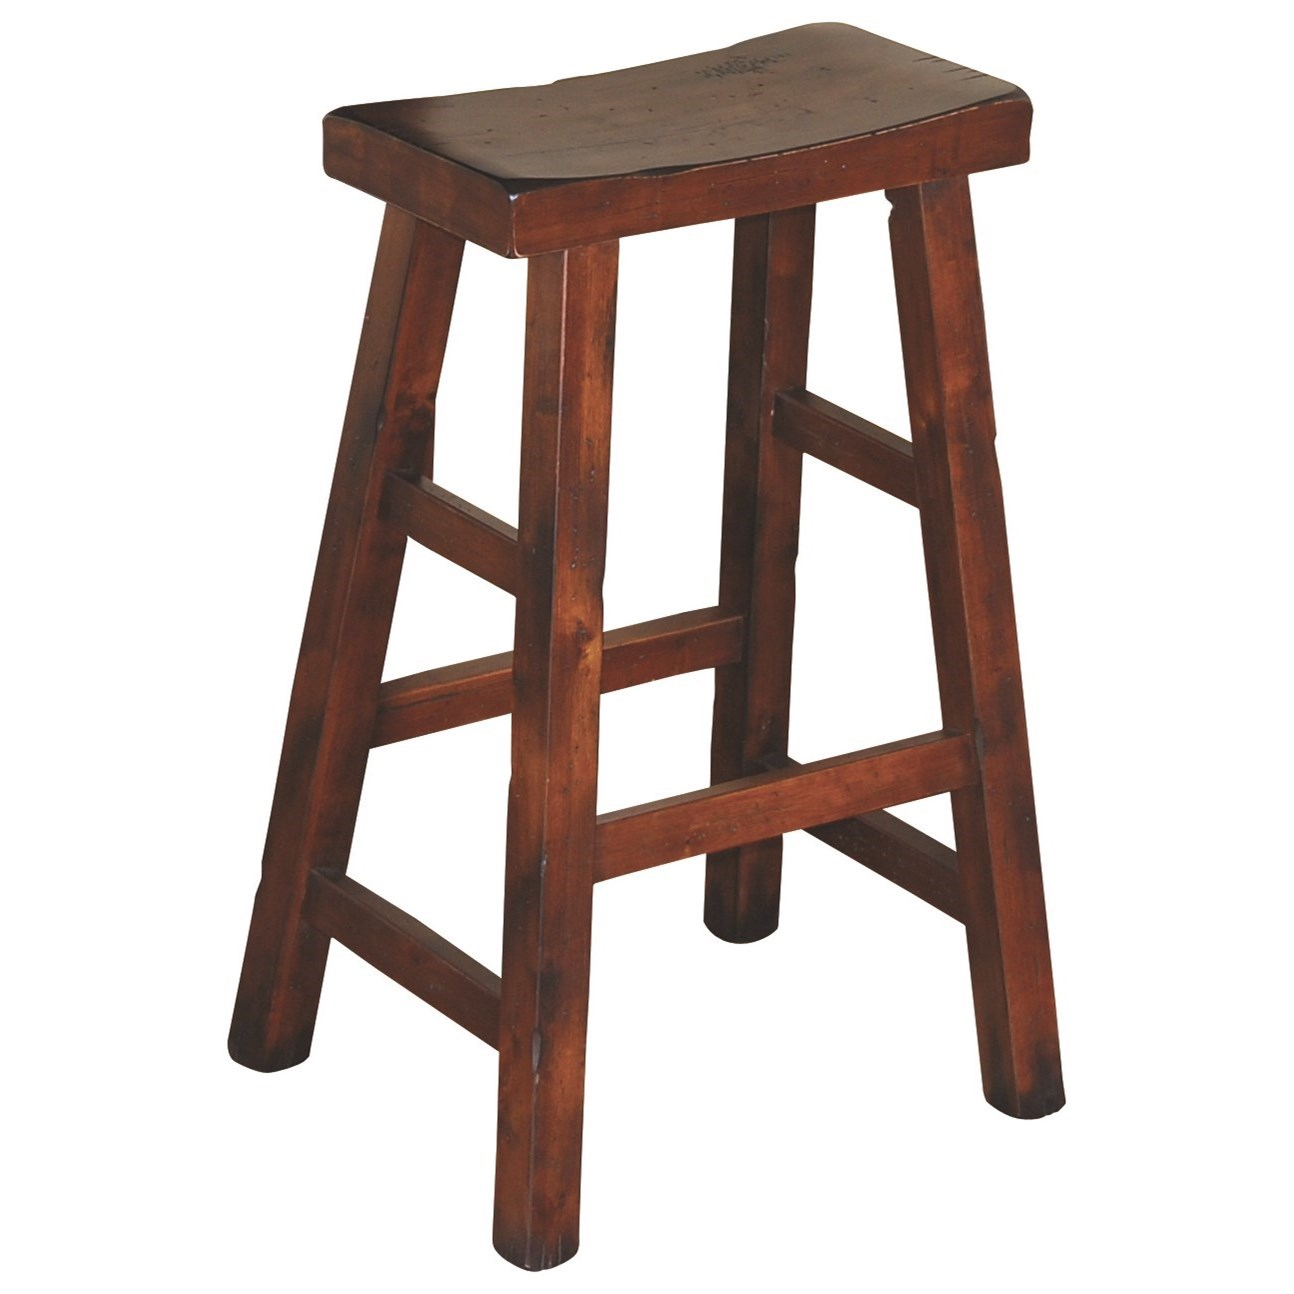 "1768 30""H Saddle Seat Stool, Wood Seat by Sunny Designs at Wilson's Furniture"